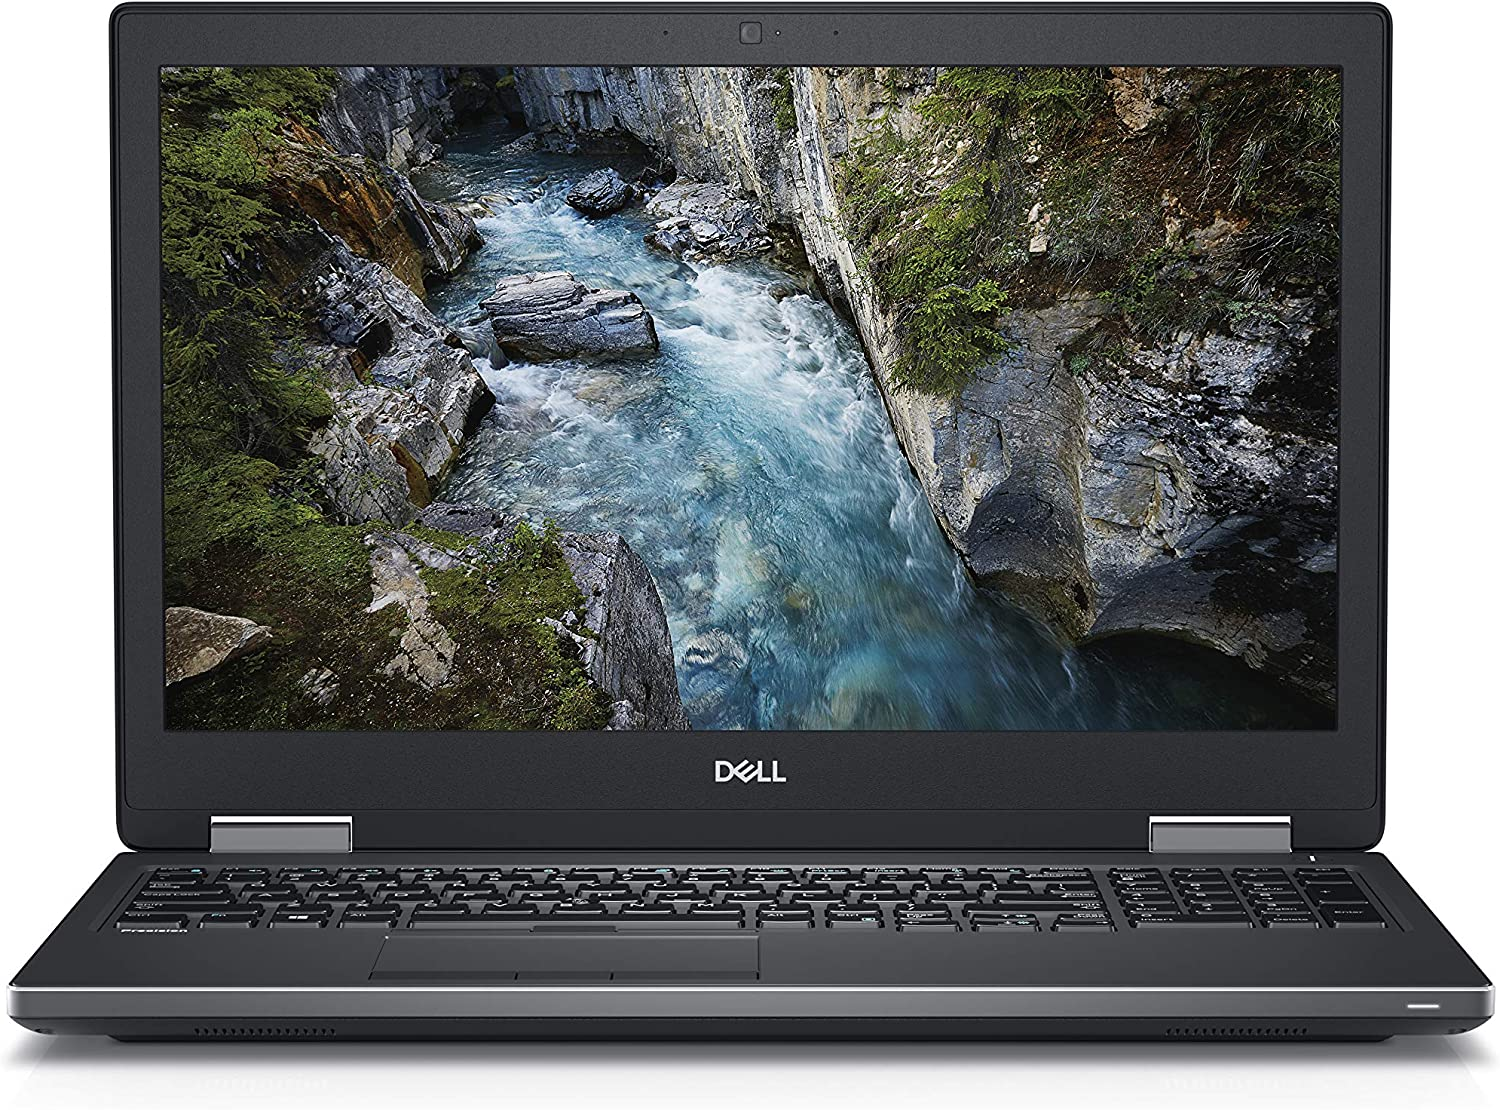 "Dell Precision 7530 Mobile Workstation | 2.6Ghz Intel Core i7 8850HK Six-Core - 15.6"" FHD IPS 